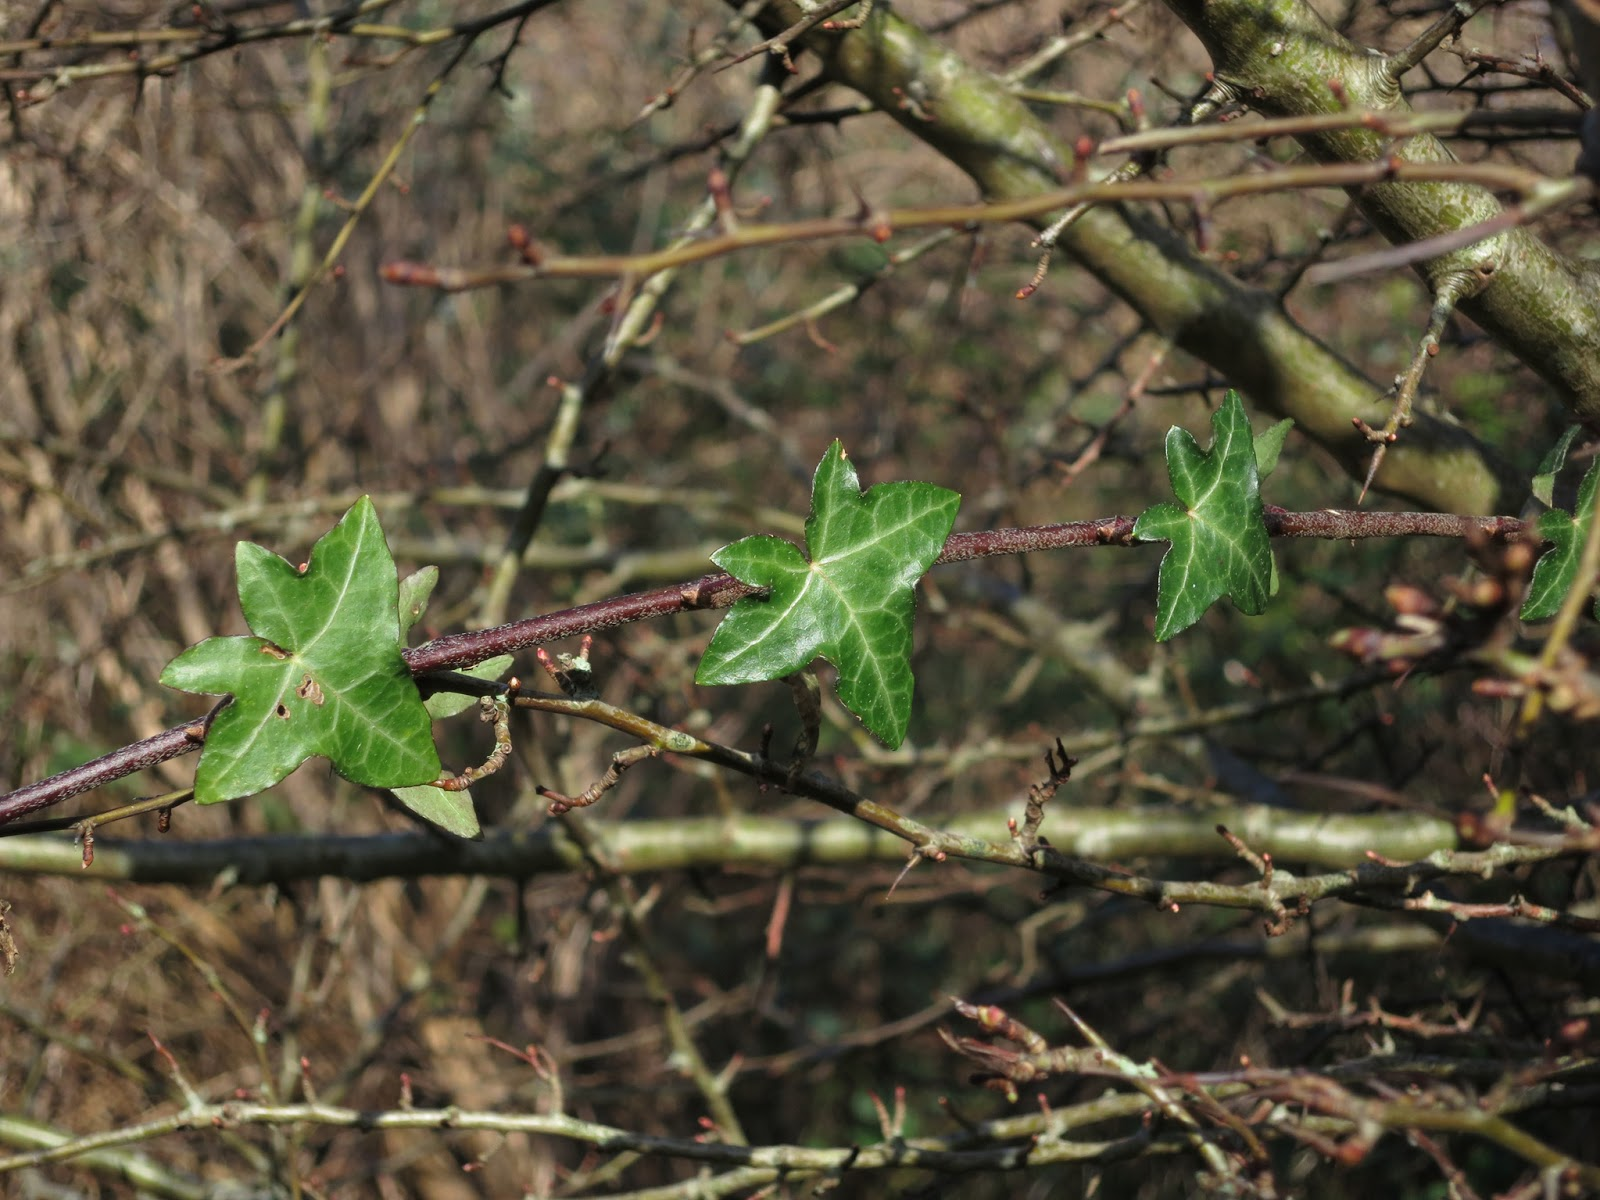 Three ivy leaves on a hawthorn tree